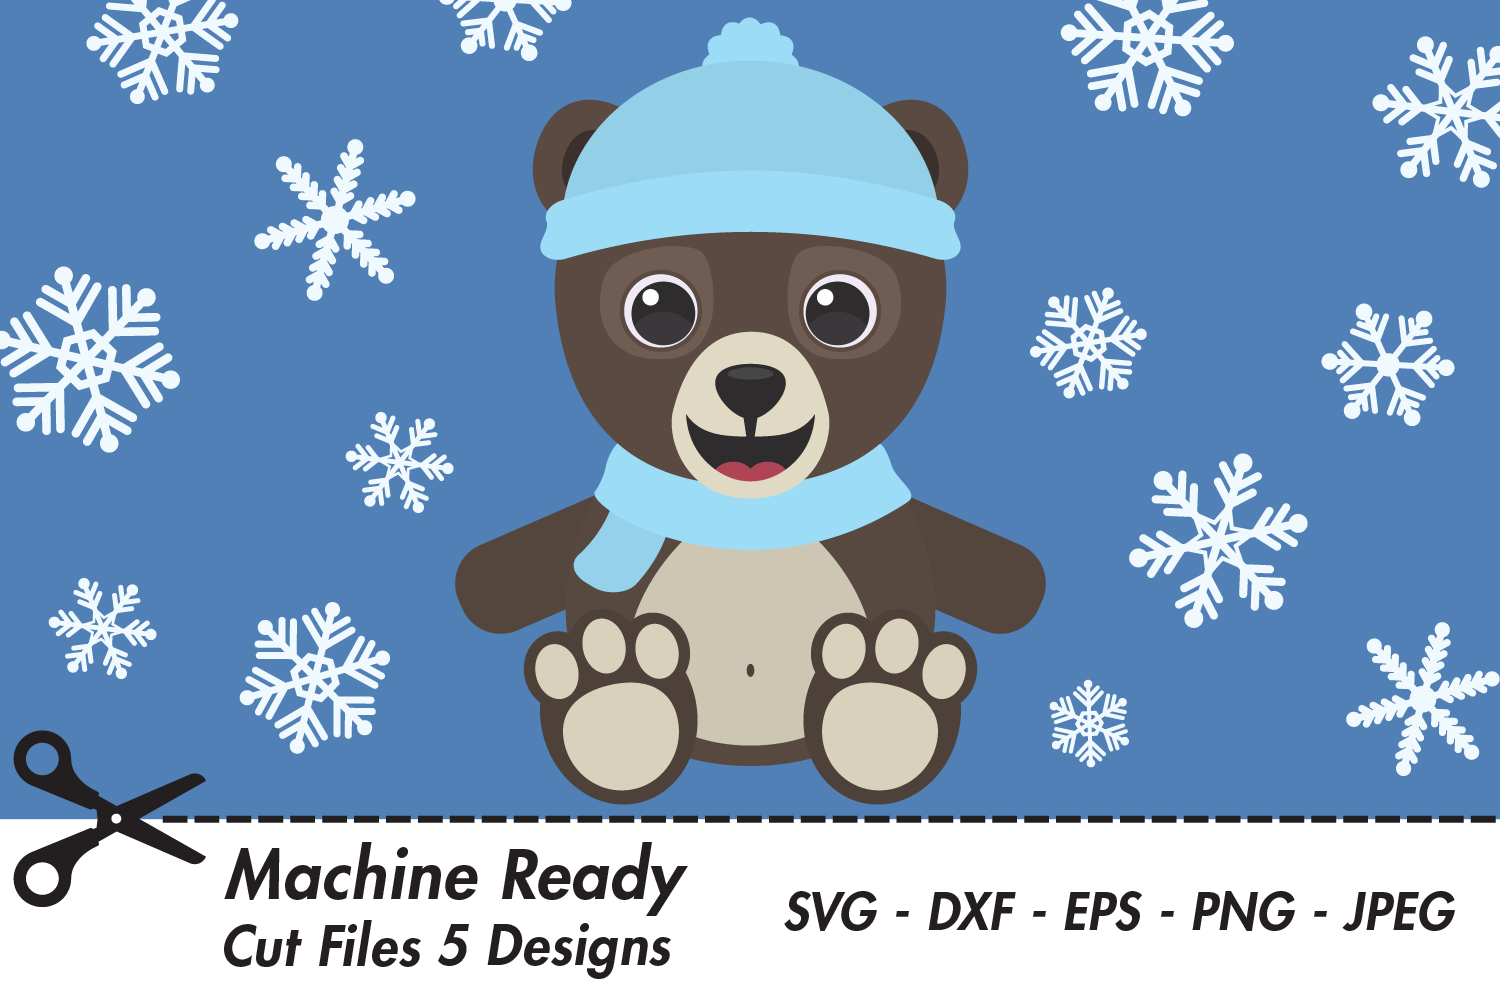 Download Free Cute Boy Grizzly Bear With Snowflakes Graphic By Captaincreative for Cricut Explore, Silhouette and other cutting machines.